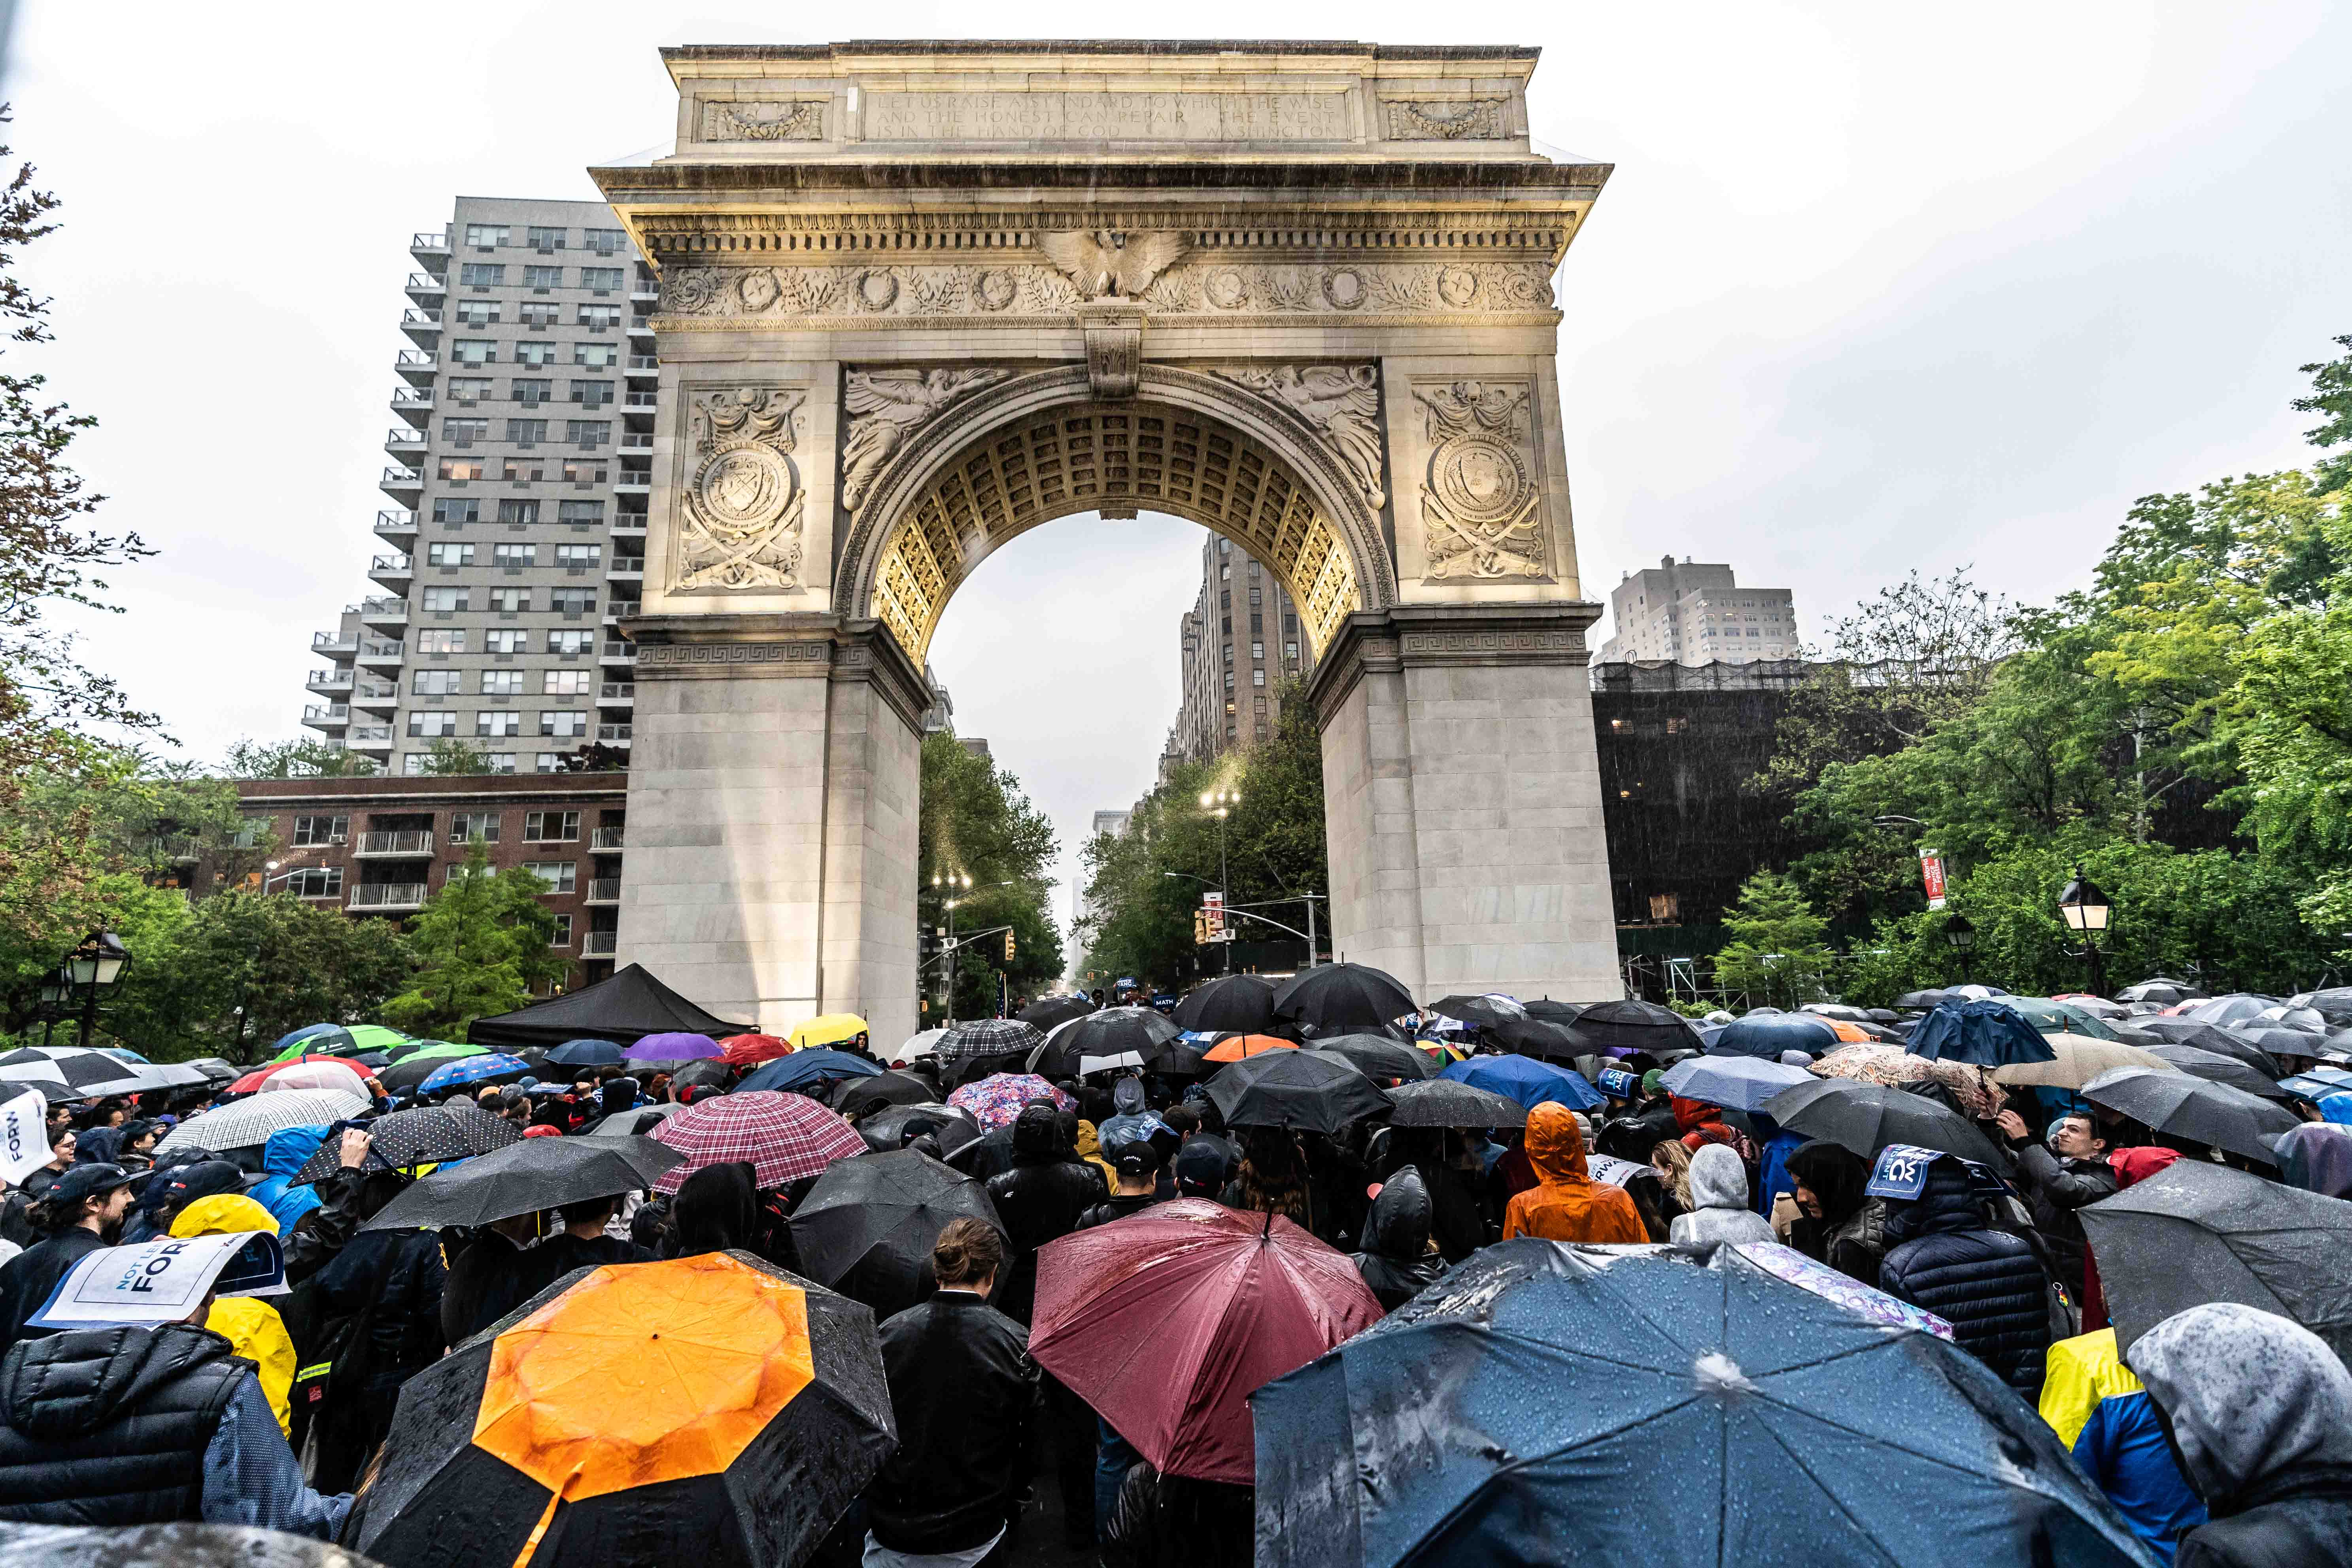 A field of umbrellas stretches across Washington Square Park -  supporters waiting to hear Andrew Yang speak